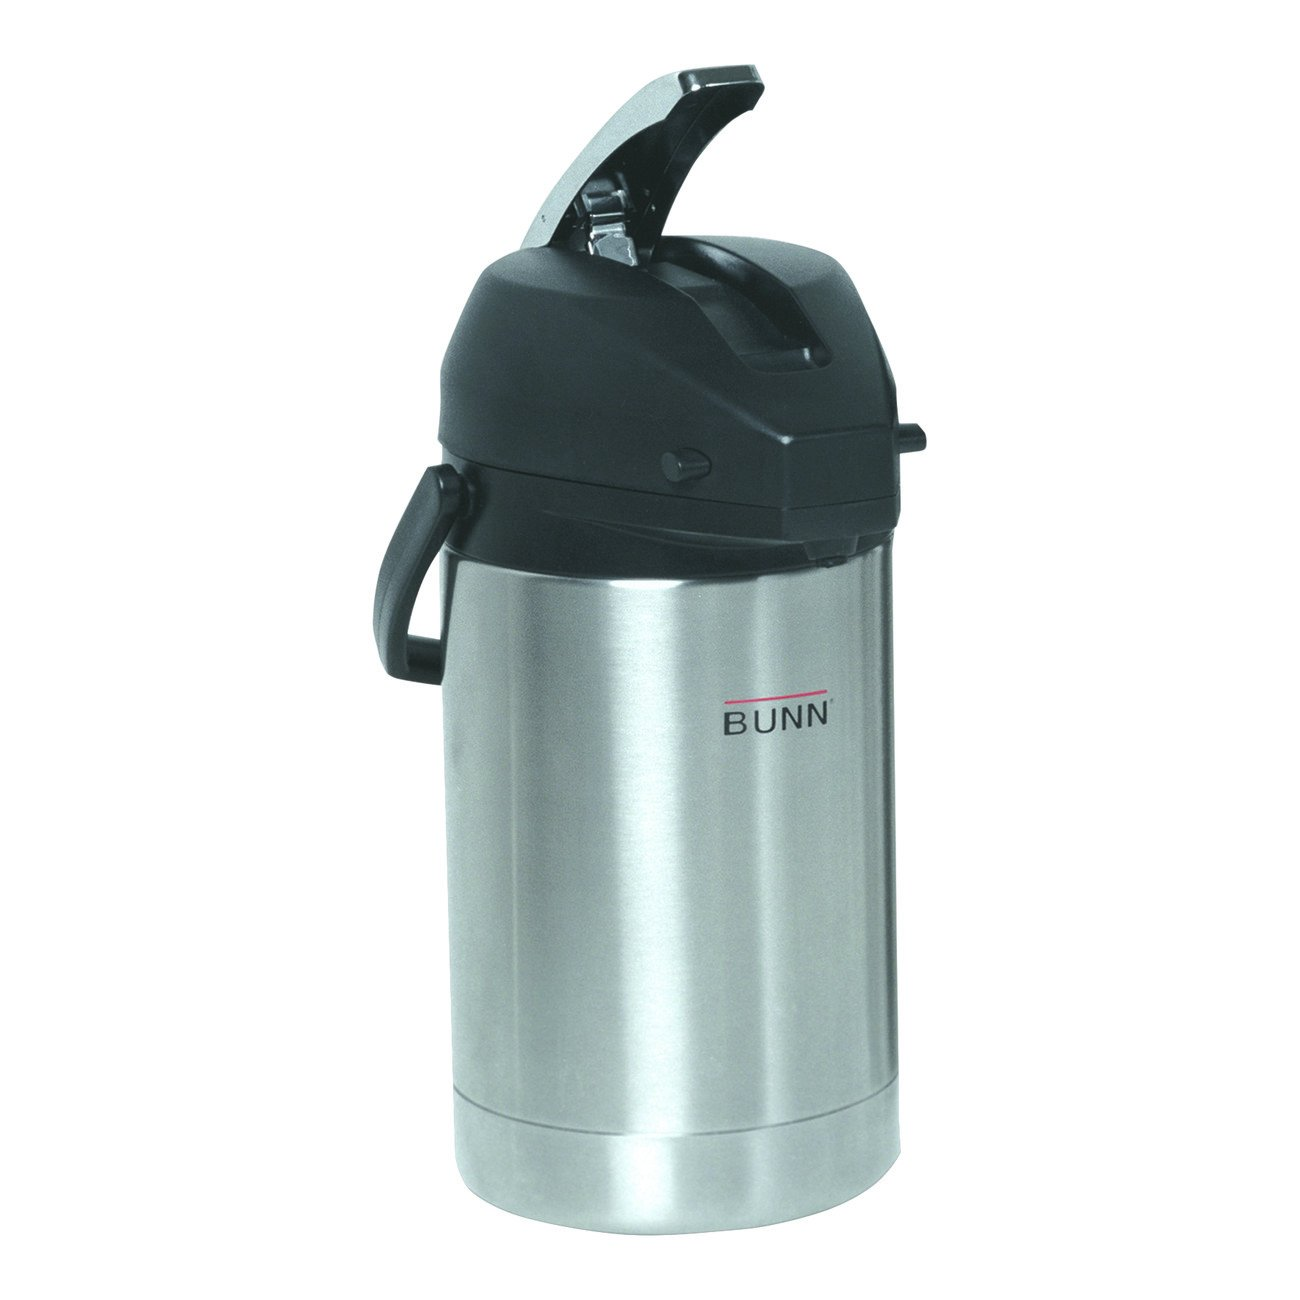 BUNN 32125 0000 Lever Action Airpot Stainless